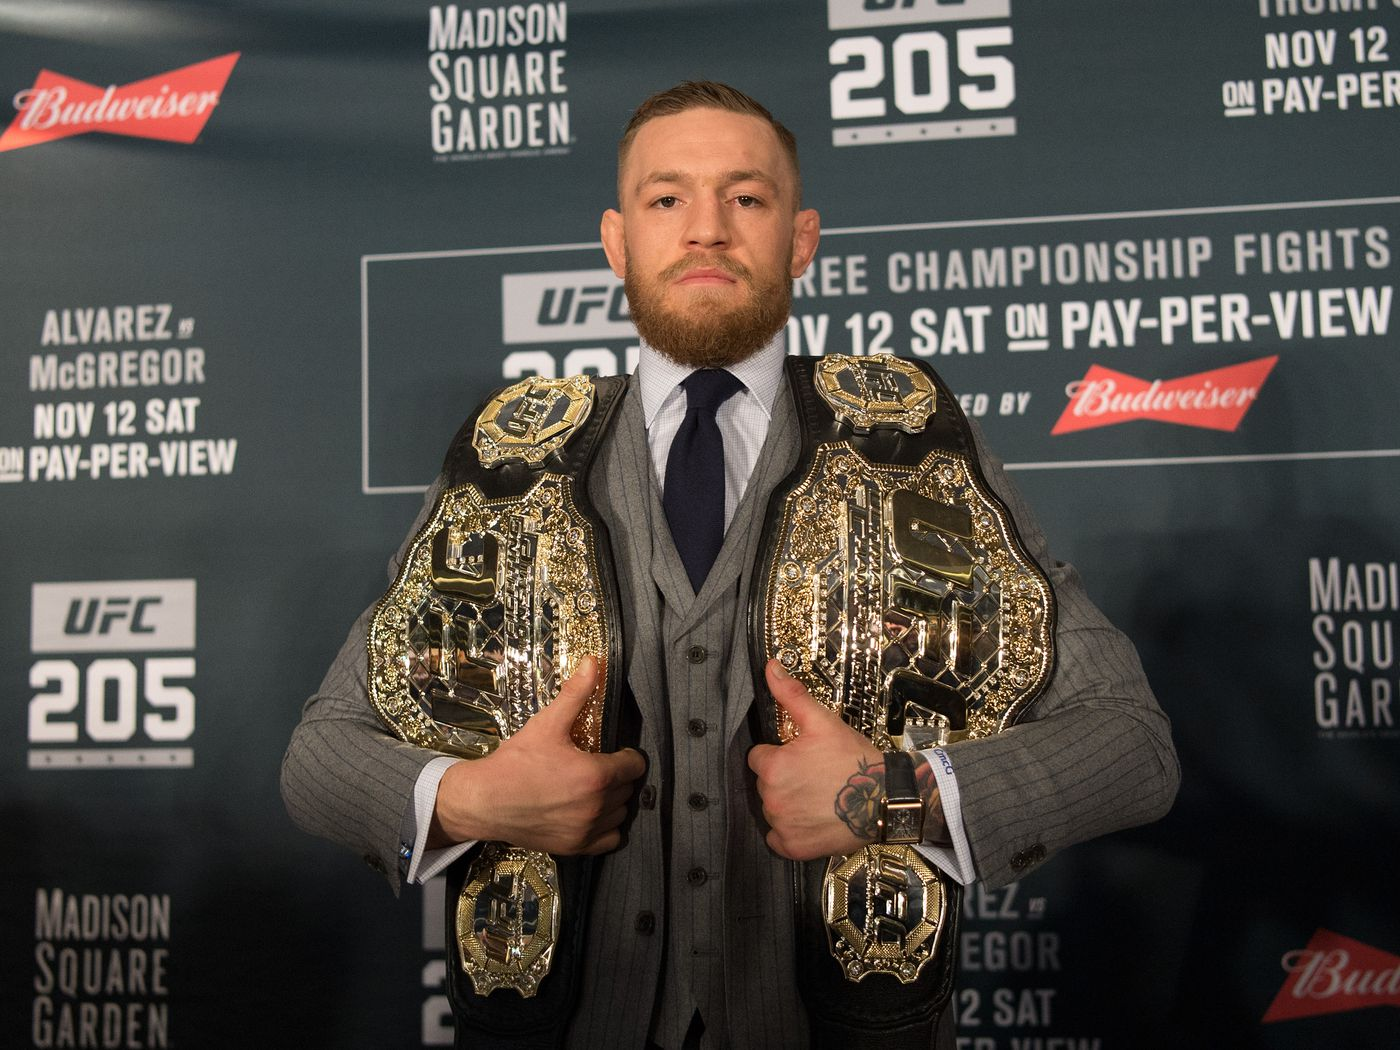 Conor McGregor regrets not fighting Woodley before Mayweather: 'I should have went for that treble' - MMAmania.com